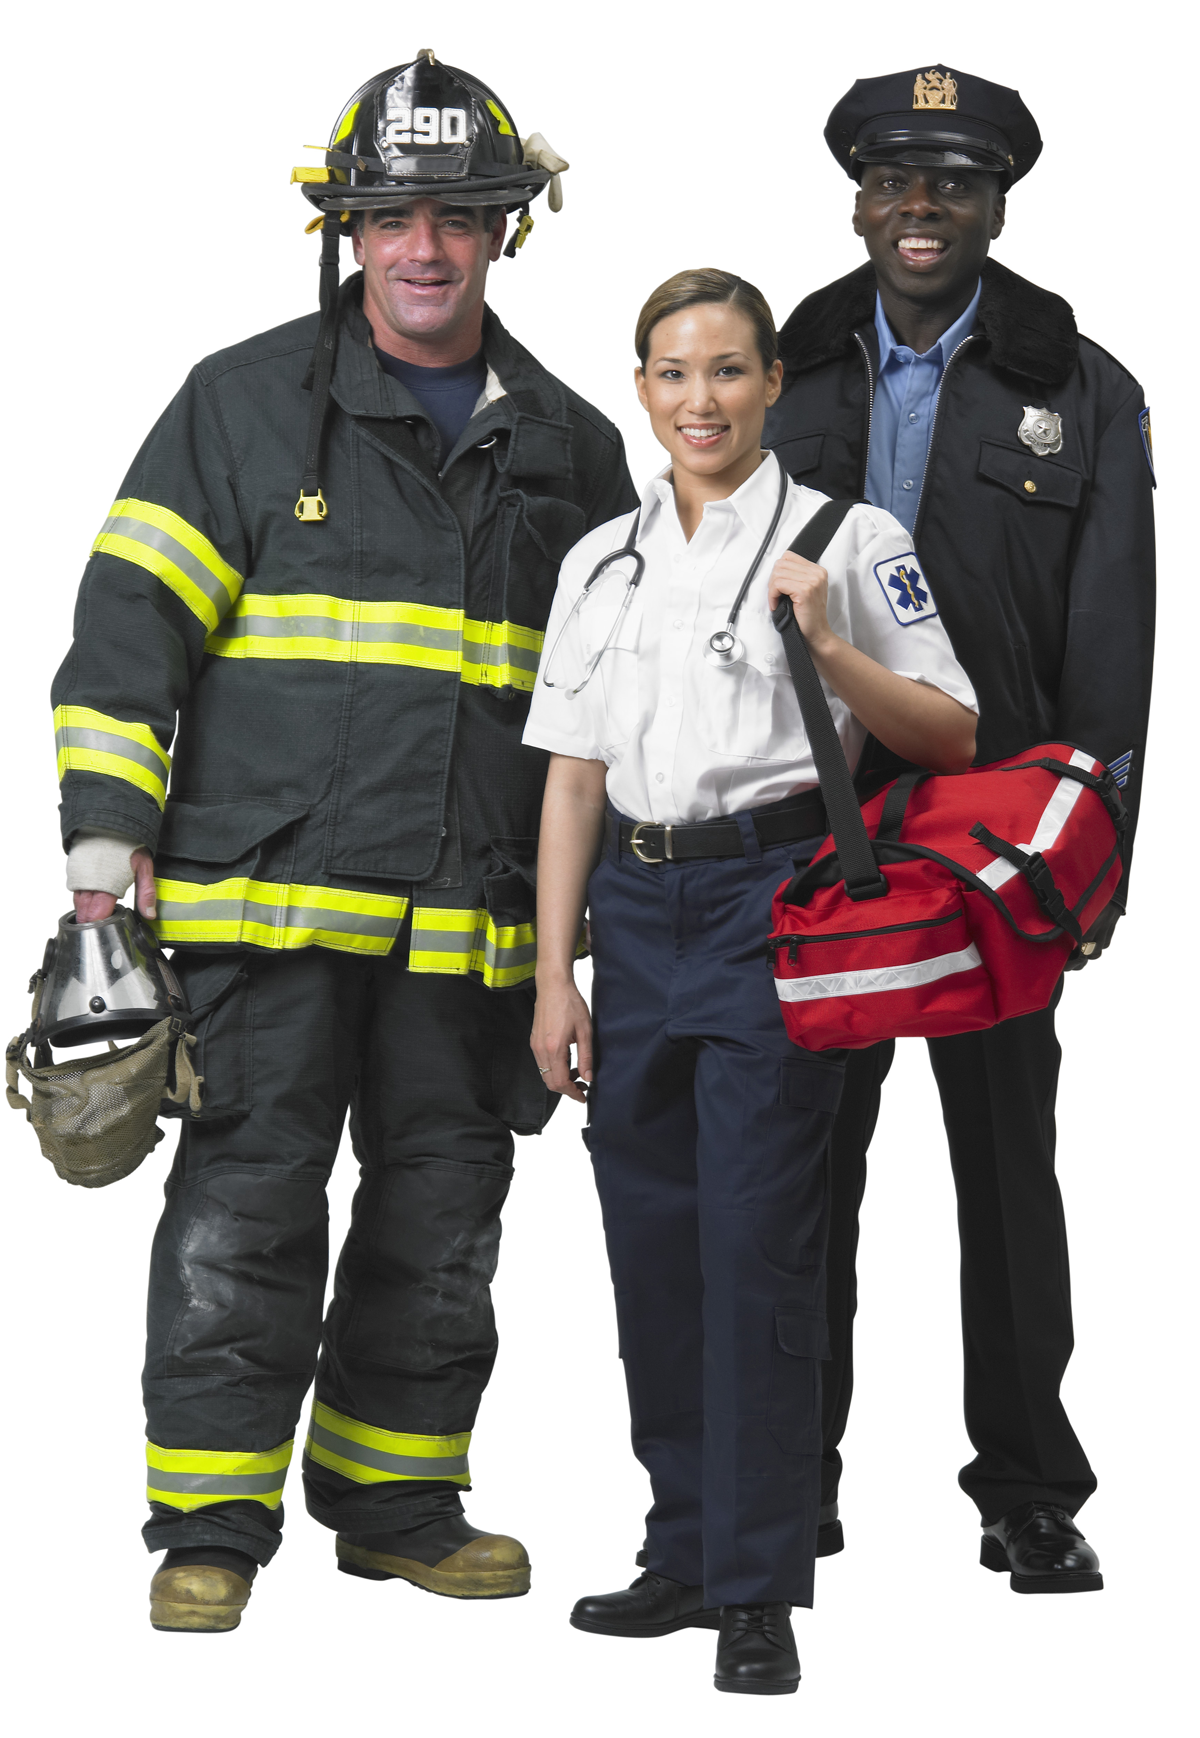 SafetyNet Tracking Solutions First Responders